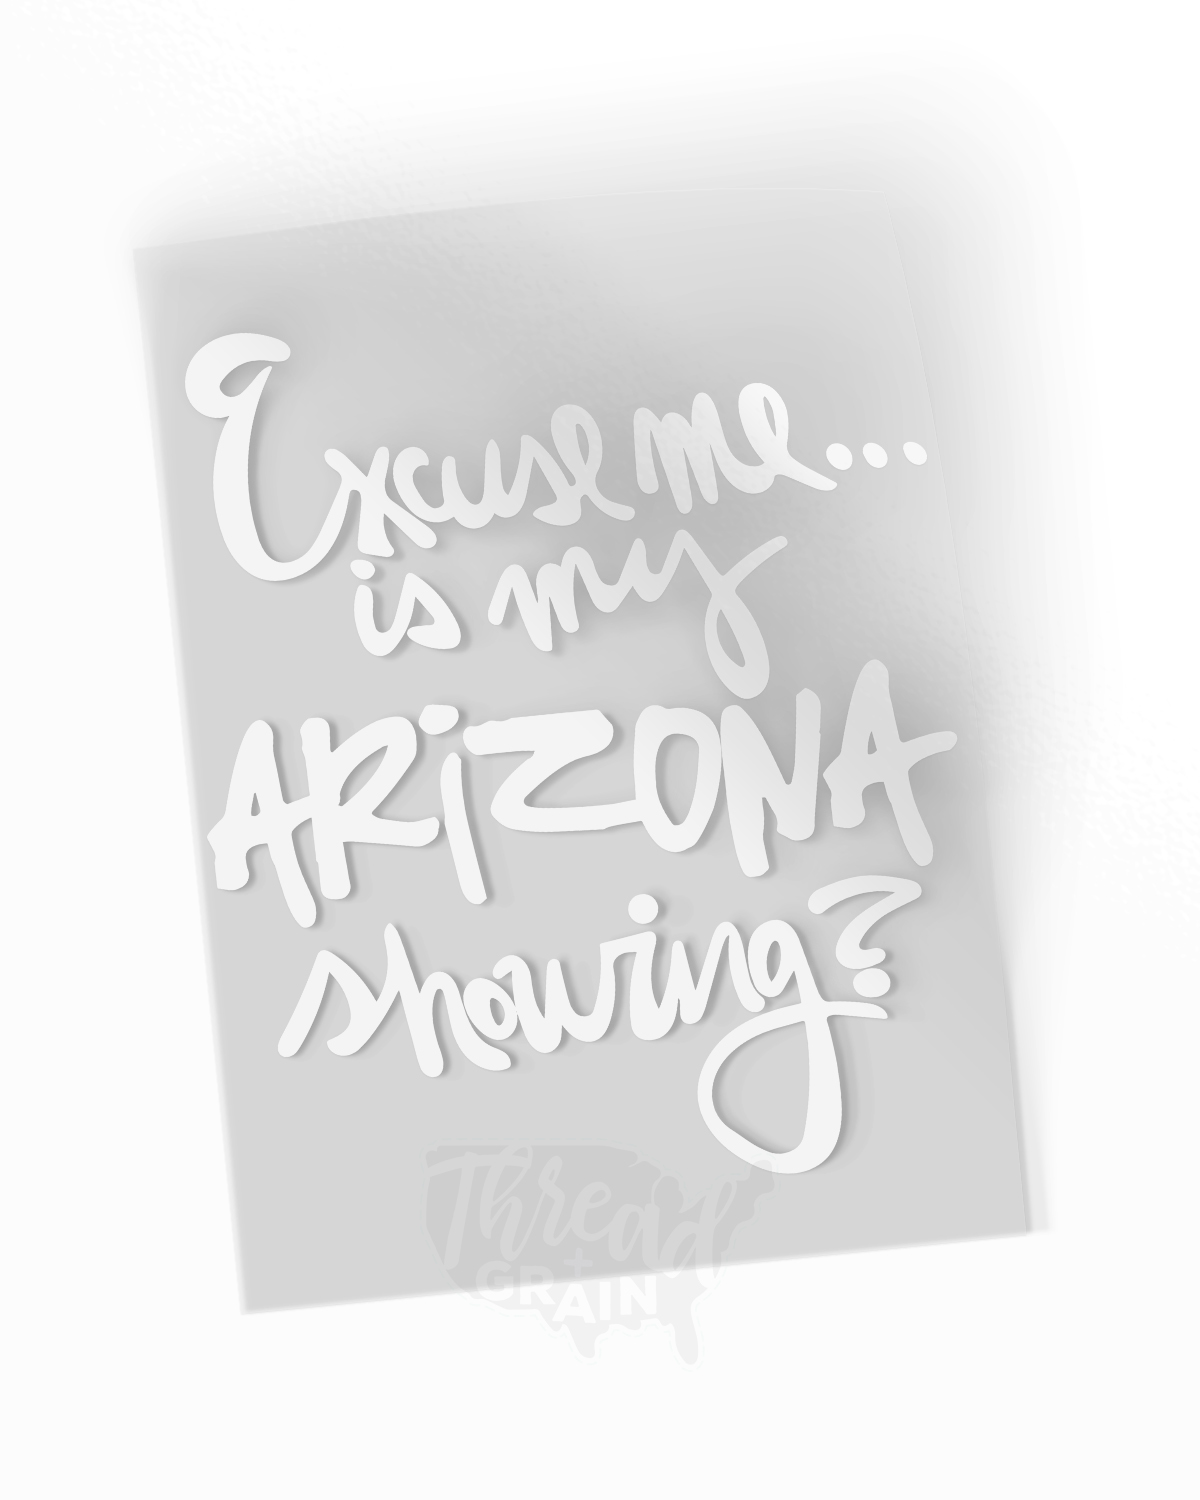 Arizona :: Is My Arizona Showing? IRON-ON TRANSFER